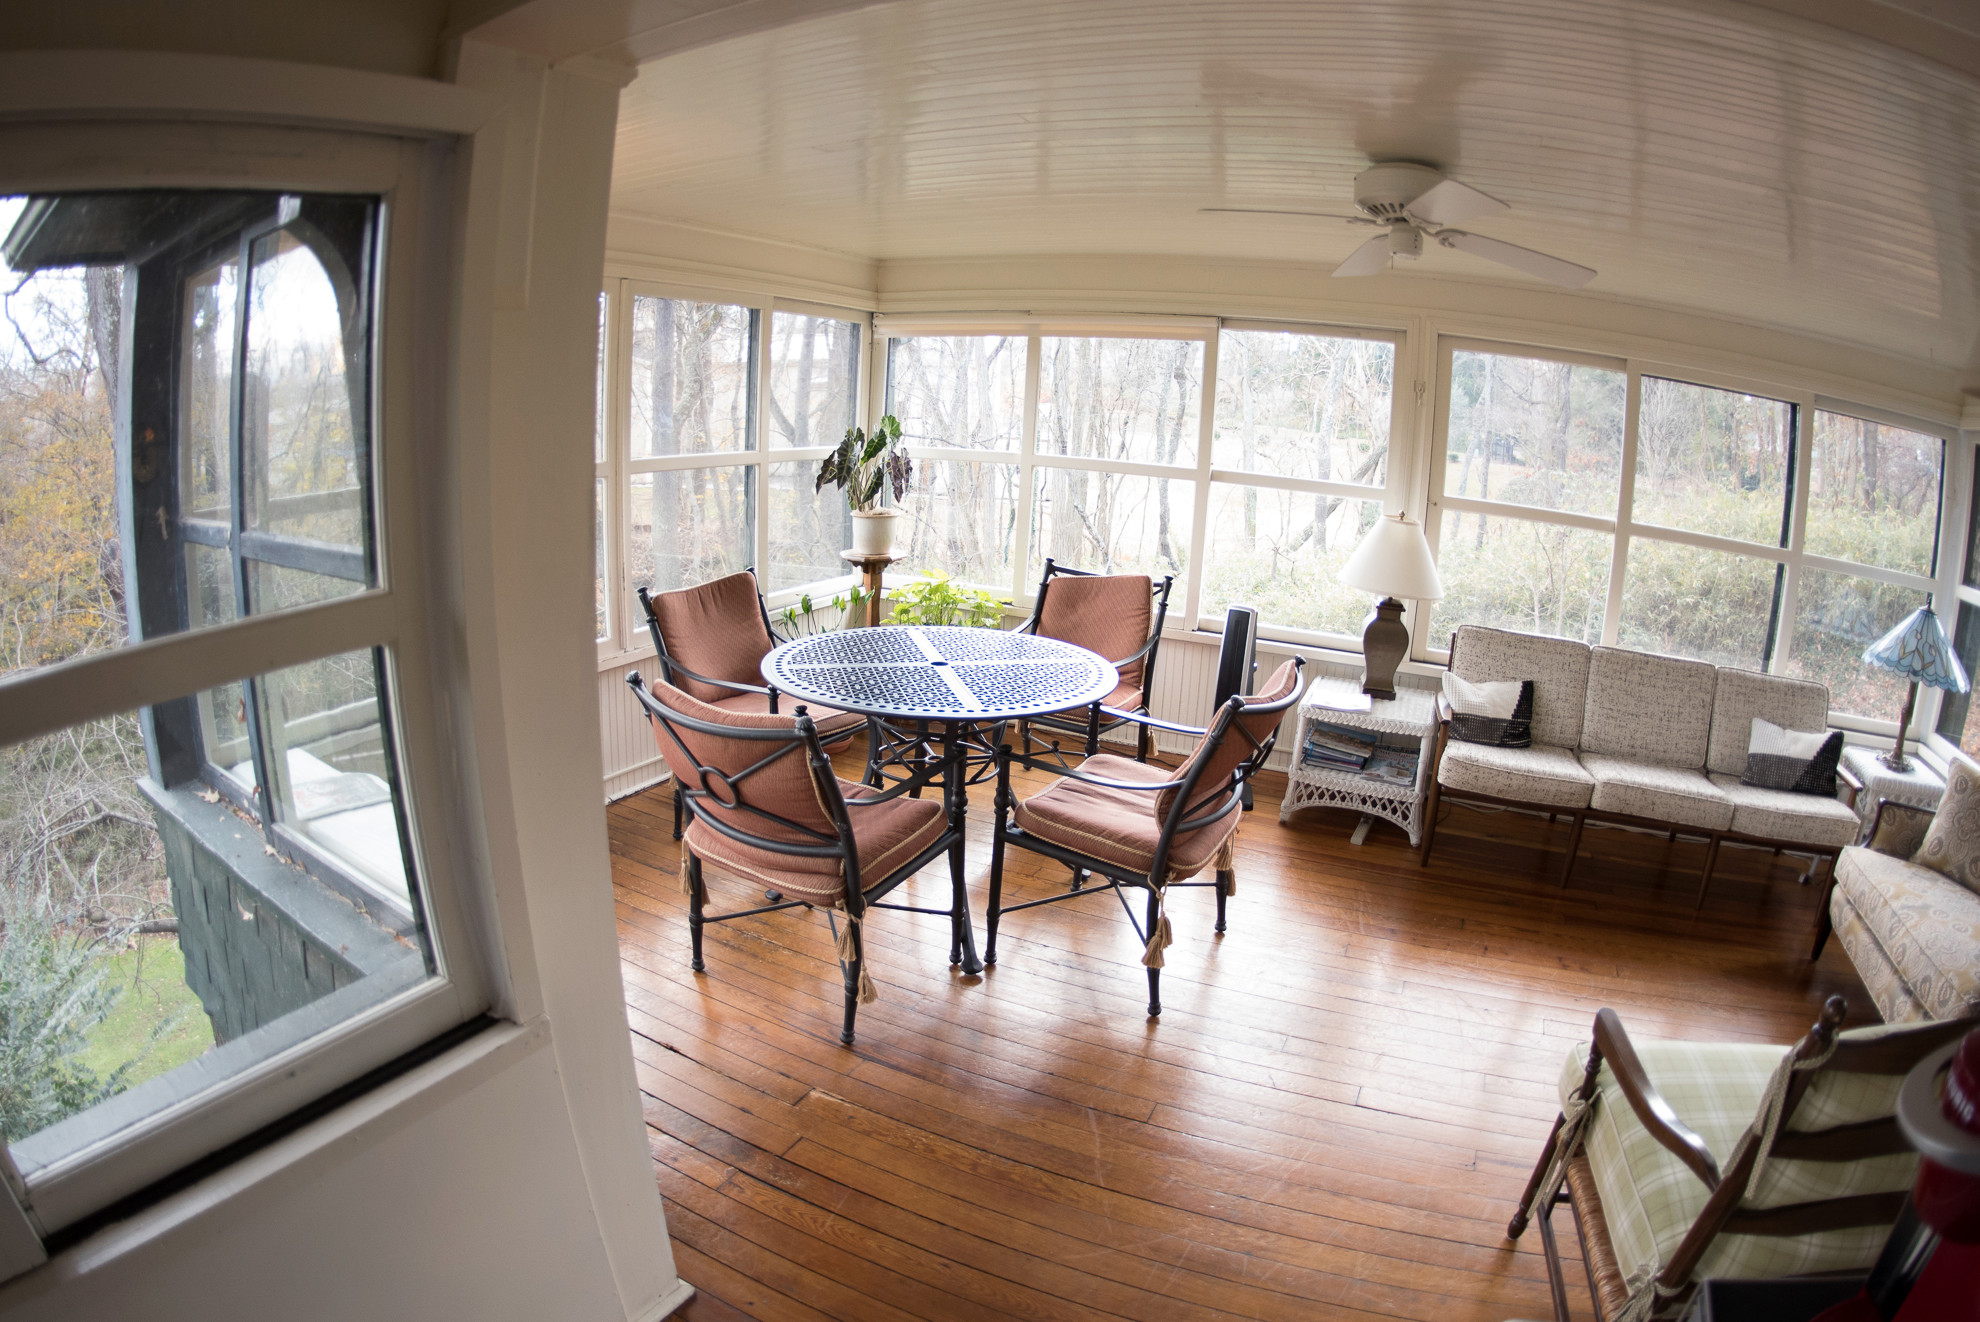 sun porch at Pinecrest with table and chairs